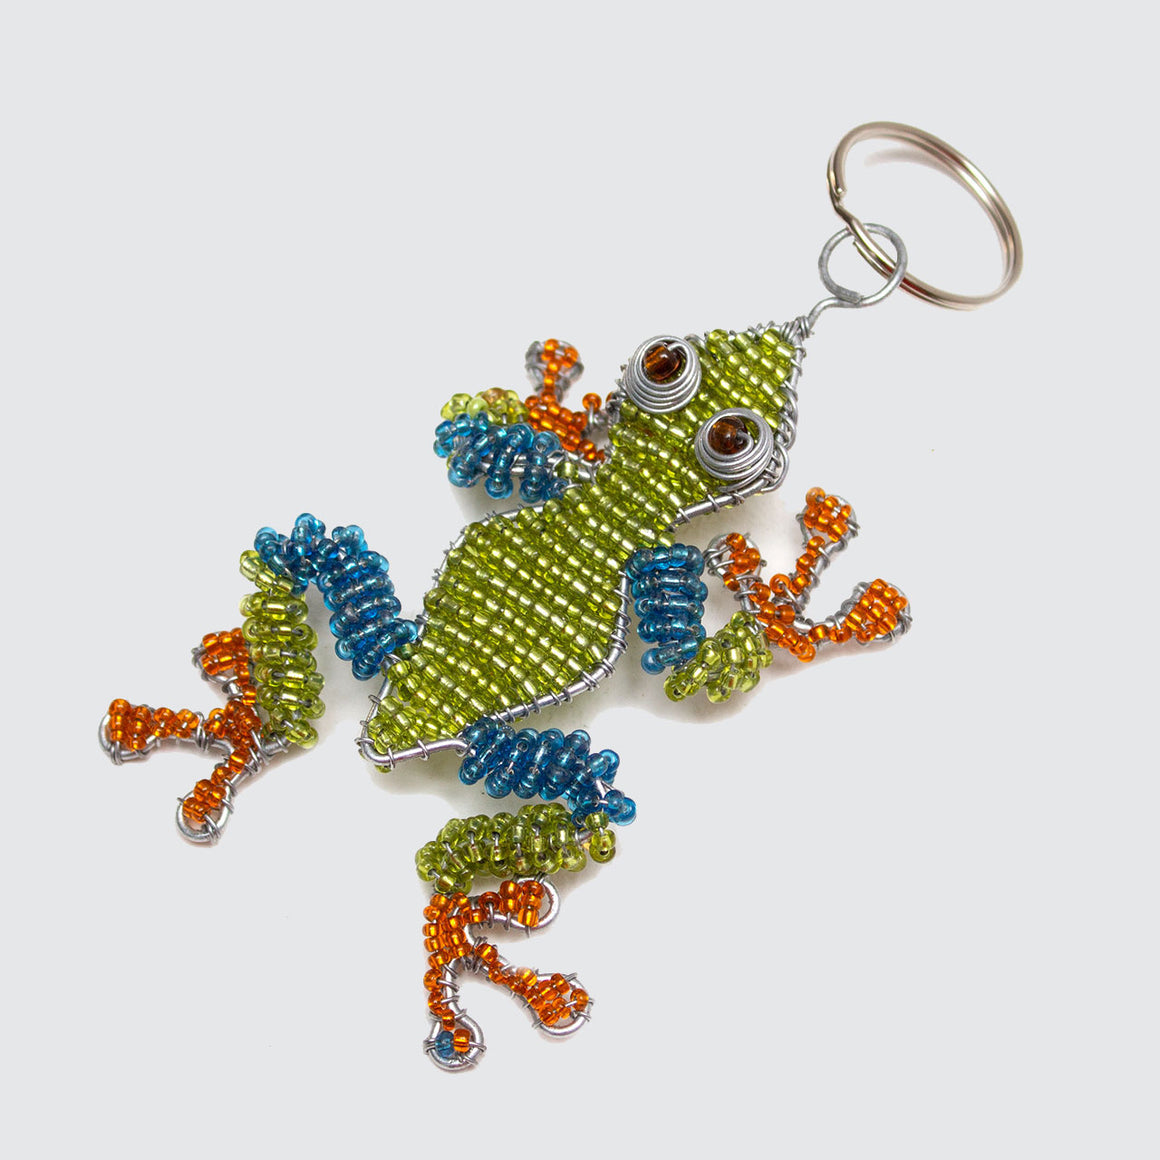 Zimbabwean Beaded Frog Keyring/Decoration